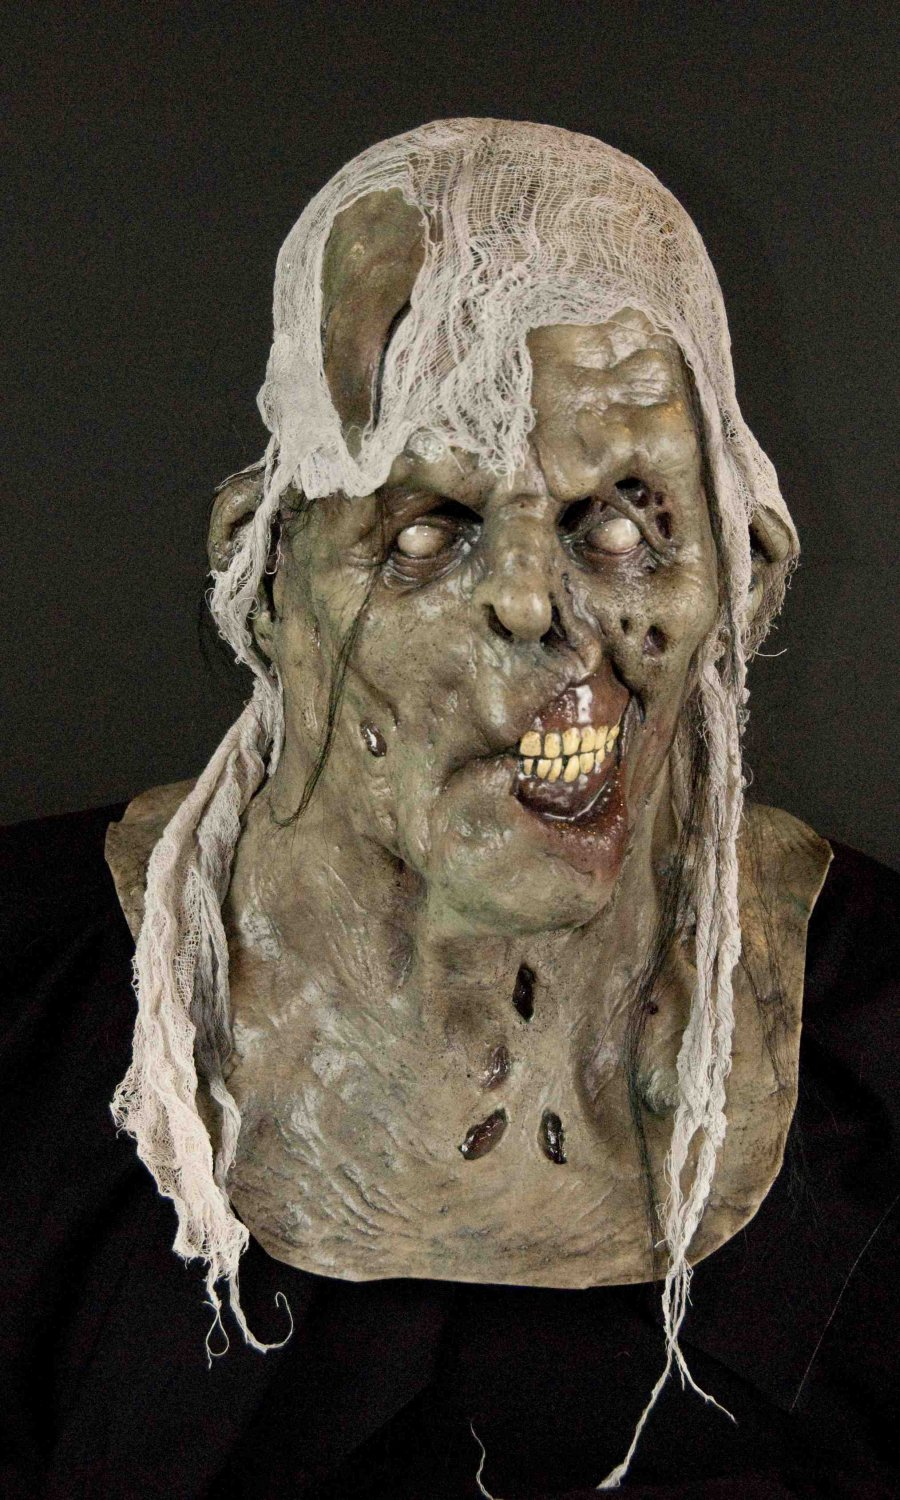 Fish Food Rotting Corpse Zombie Undead Walking Dead Creature Scary Halloween Mask